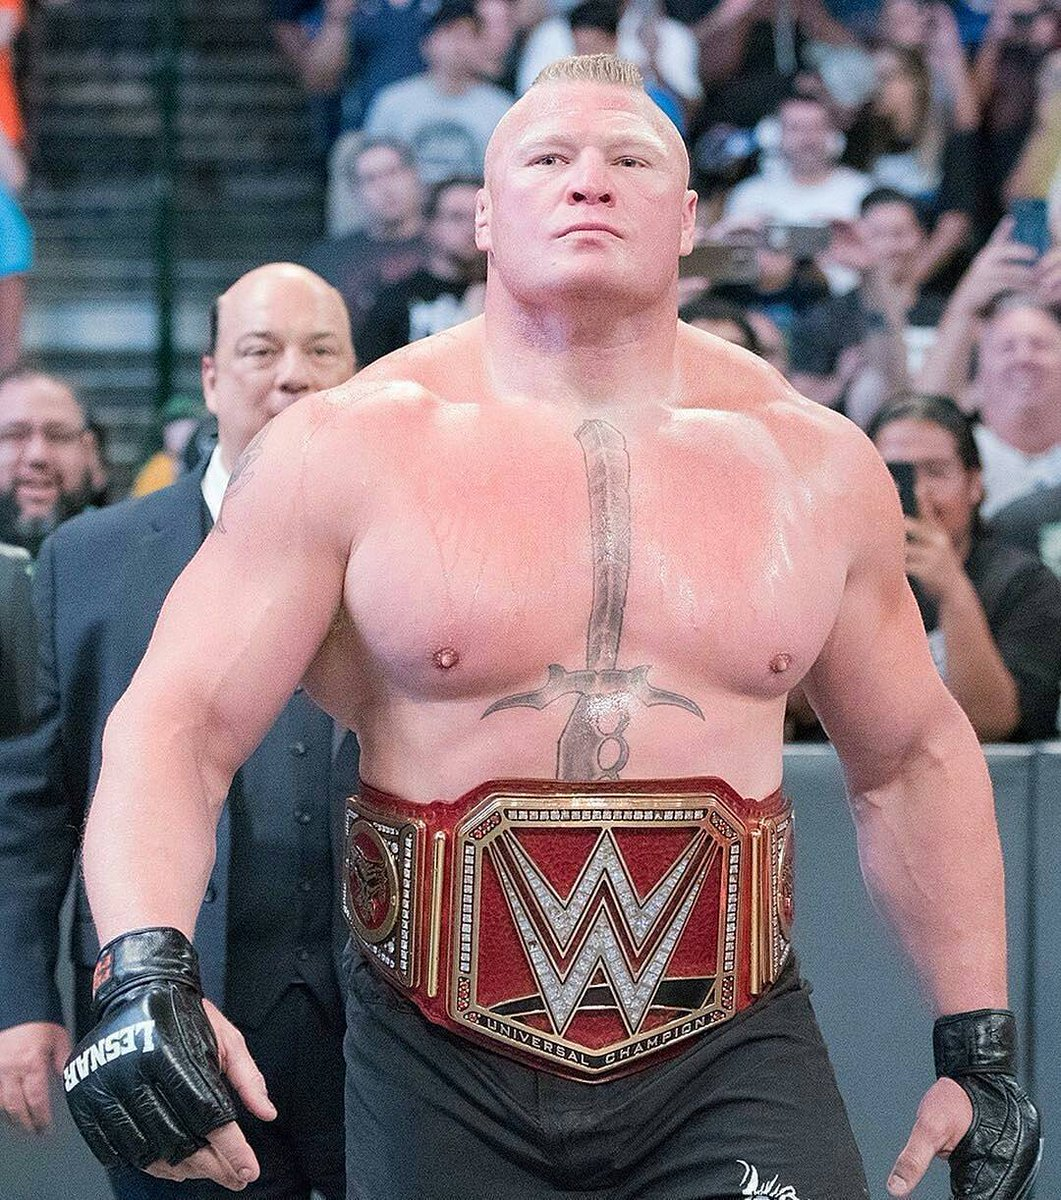 DeYEF0wW4AA0YTU - Does Brock Lesnar Deserve To Be The Longest Reigning Champion Of The Modern Era?